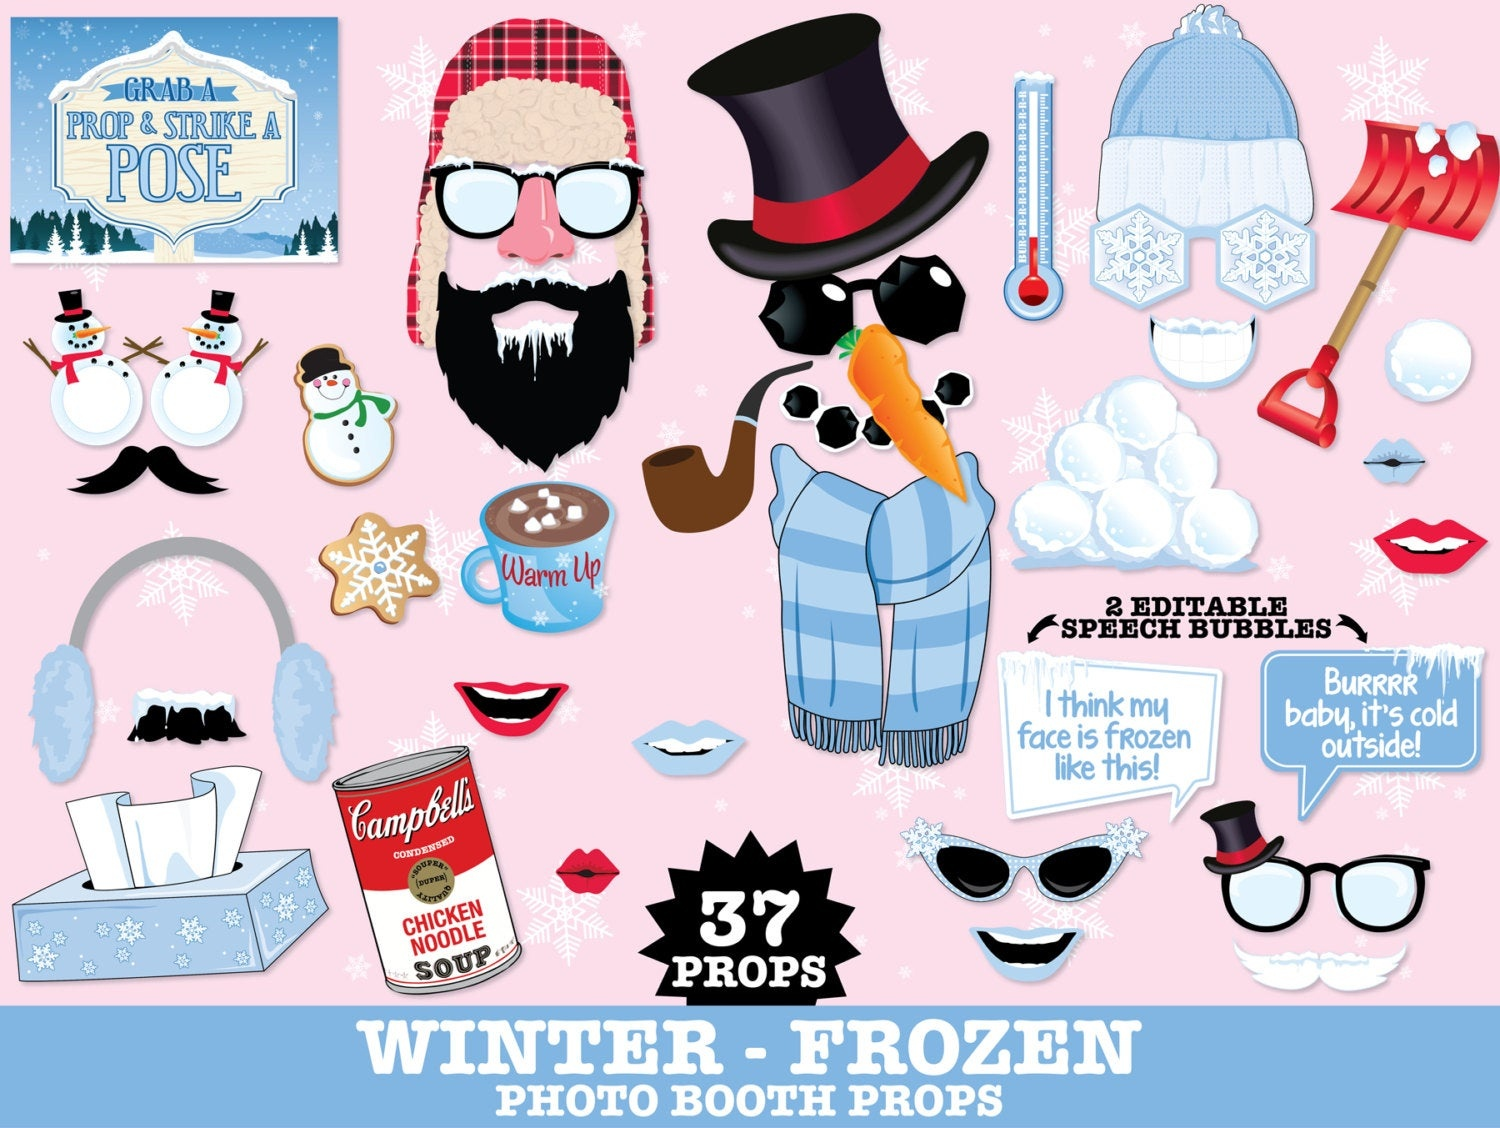 Winter Frozen Photo Booth Props - Frozen Party, Christmas Party, Hot - Free Printable Frozen Photo Booth Props